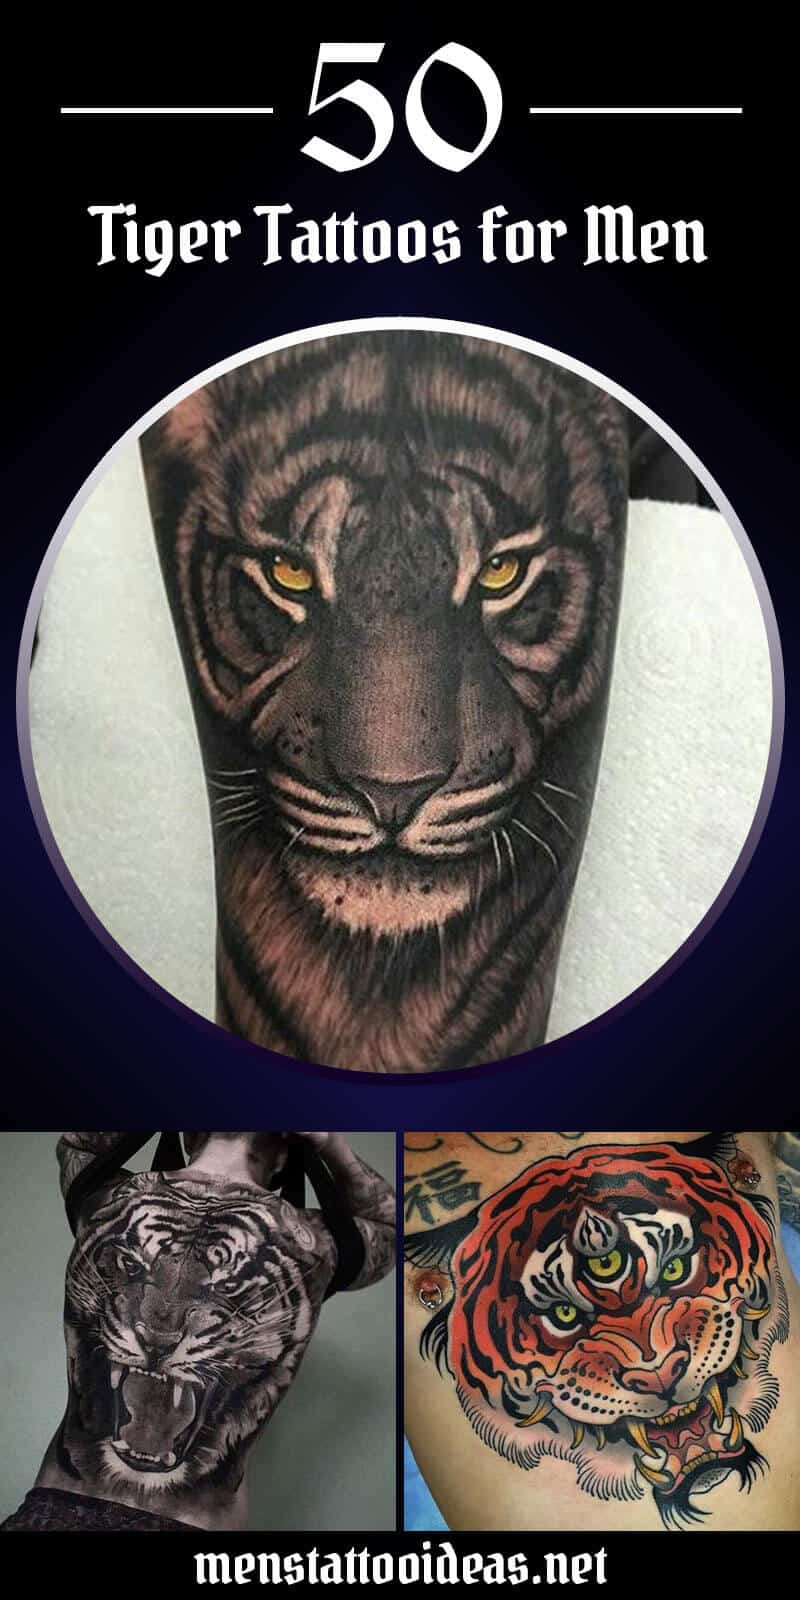 tiger-tattoos-for-men